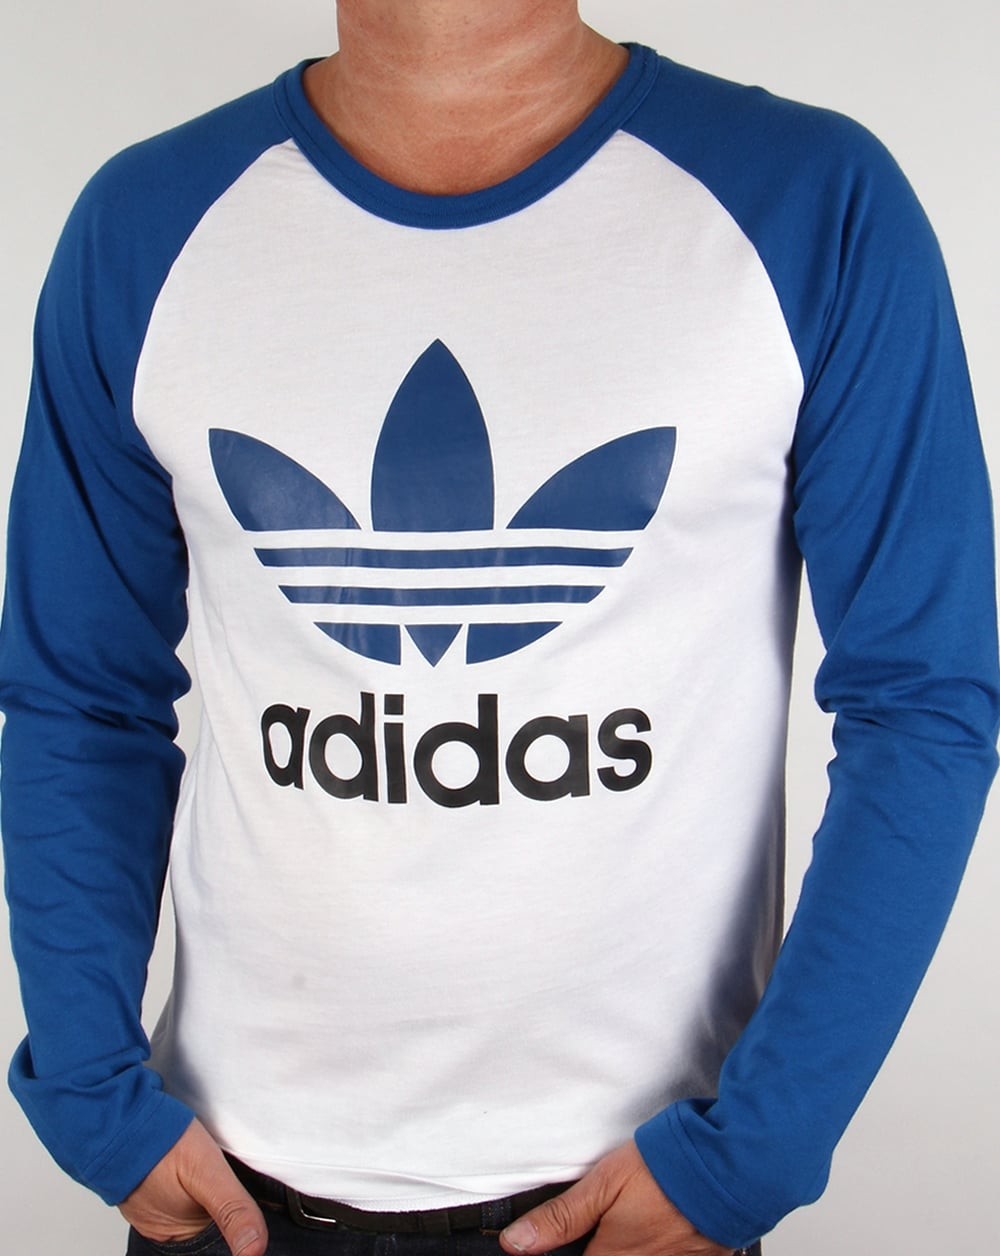 Buy cheap online adidas t shirt sale for Adidas long sleeve t shirt with trefoil logo